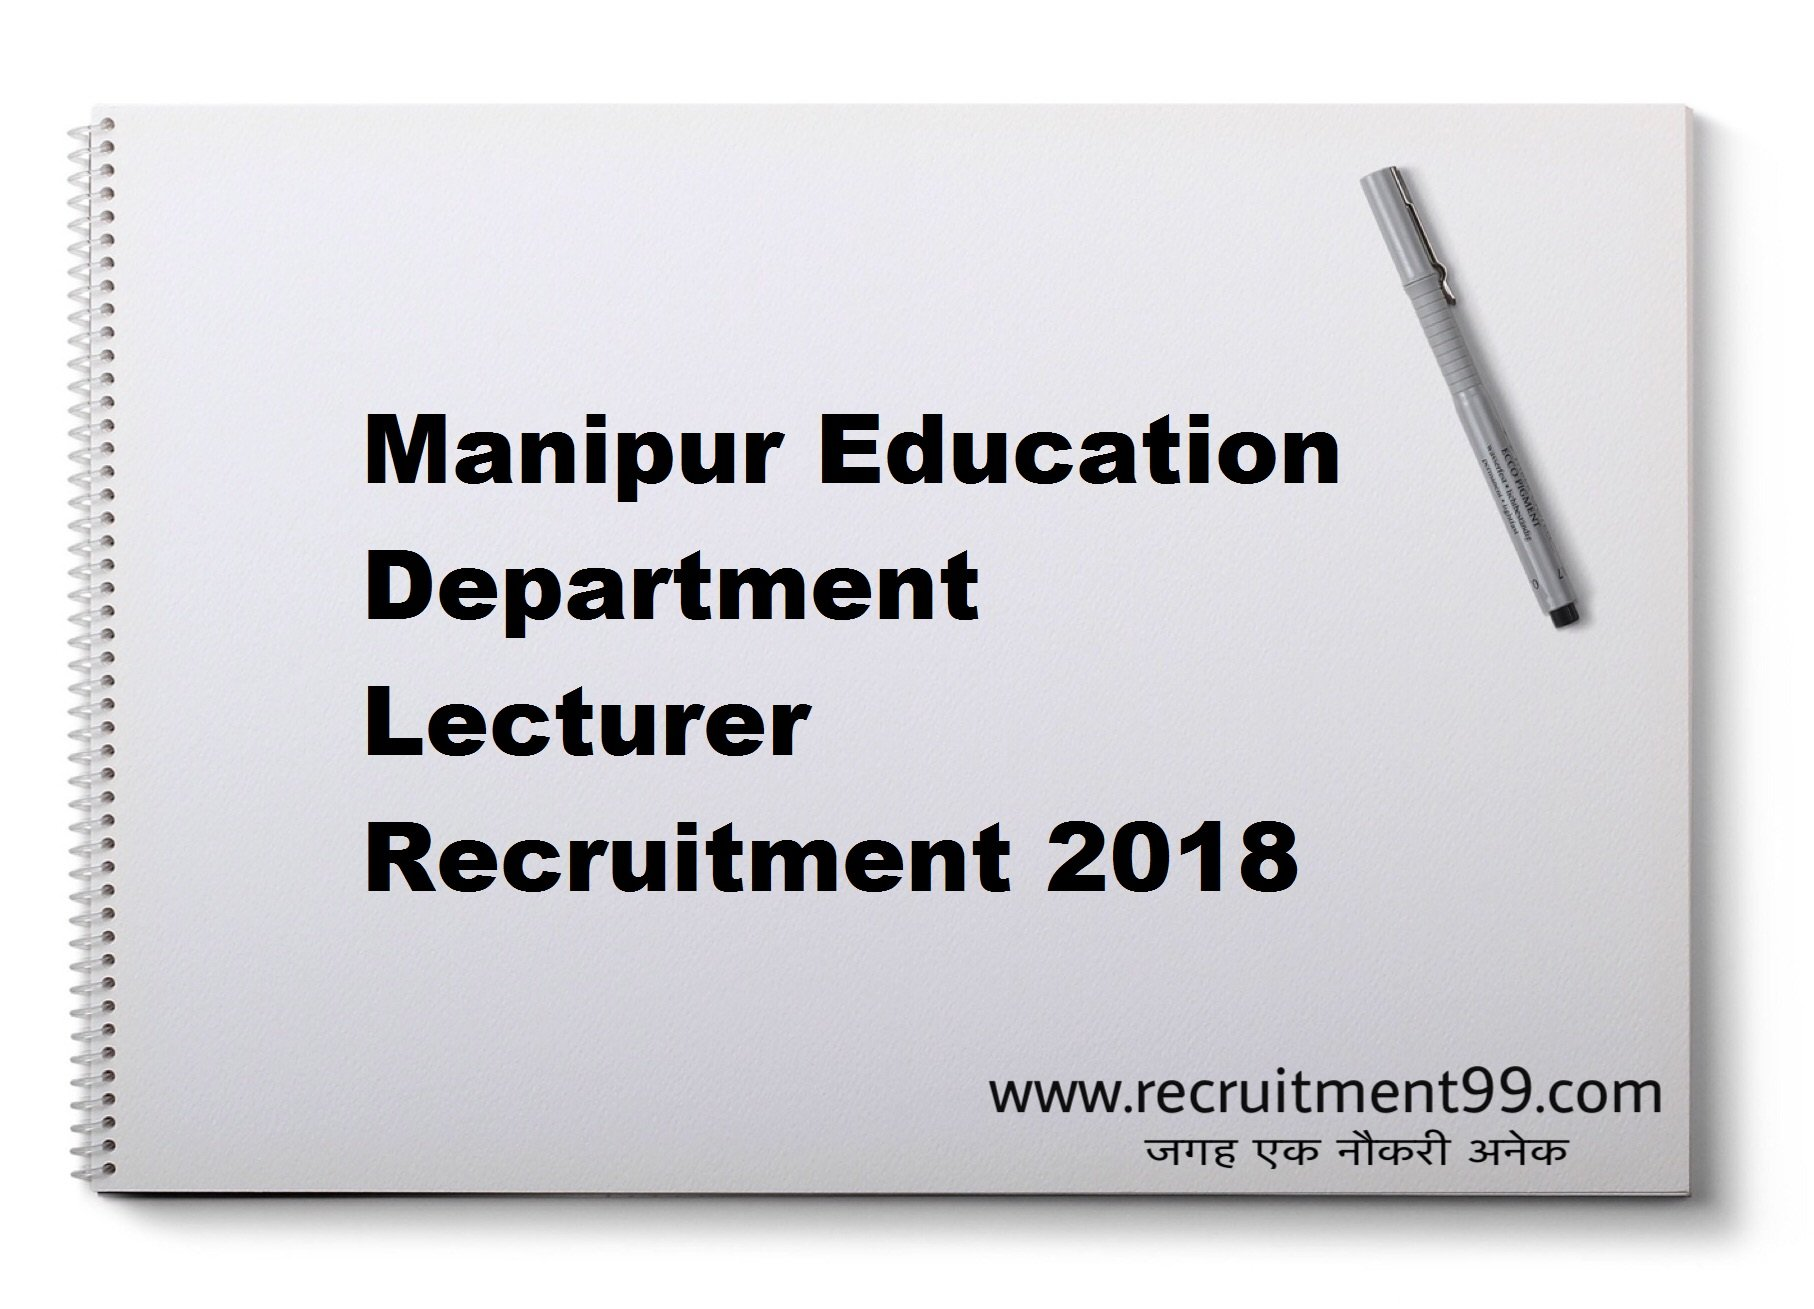 Manipur Education Department Lecturer Recruitment 2018